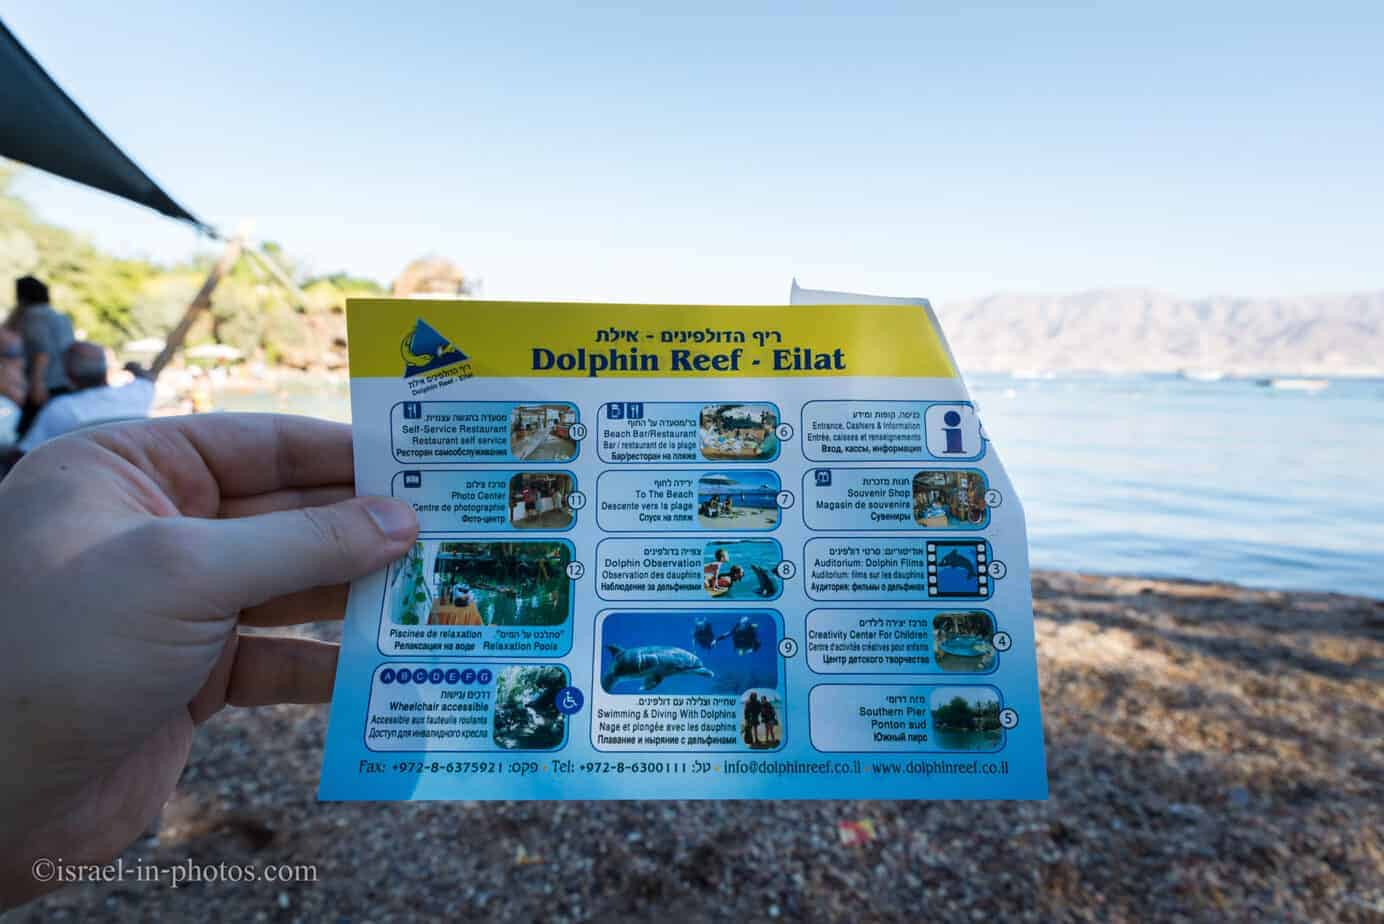 At Dolphin Reef in Eilat, Israel